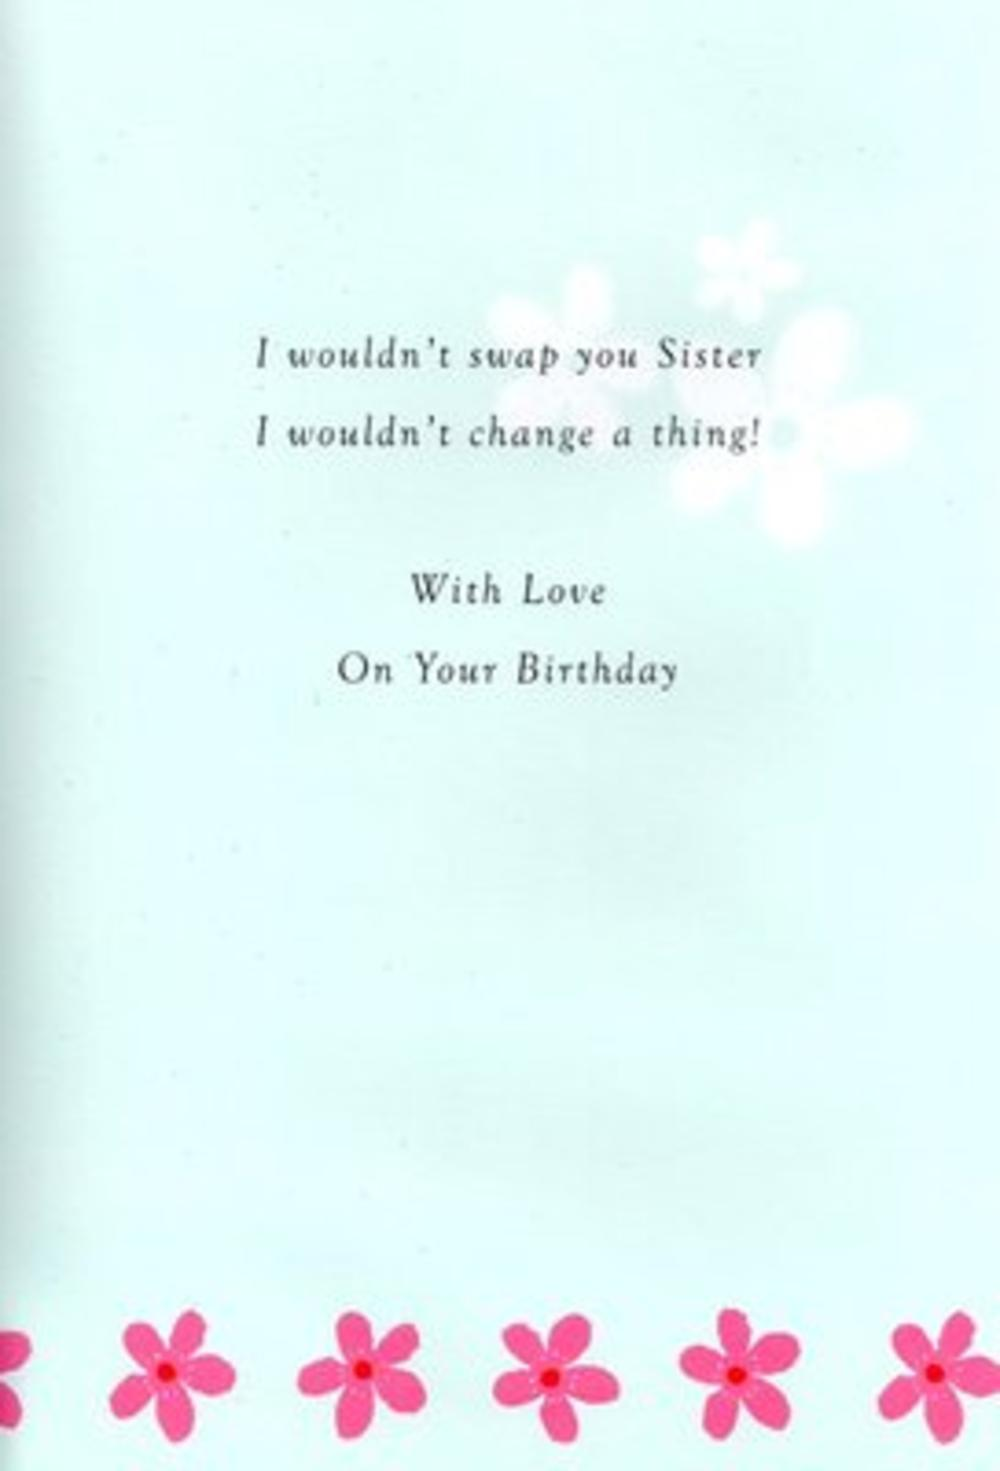 Sister birthday poetry in motion card cards love kates thumbnail 2 m4hsunfo